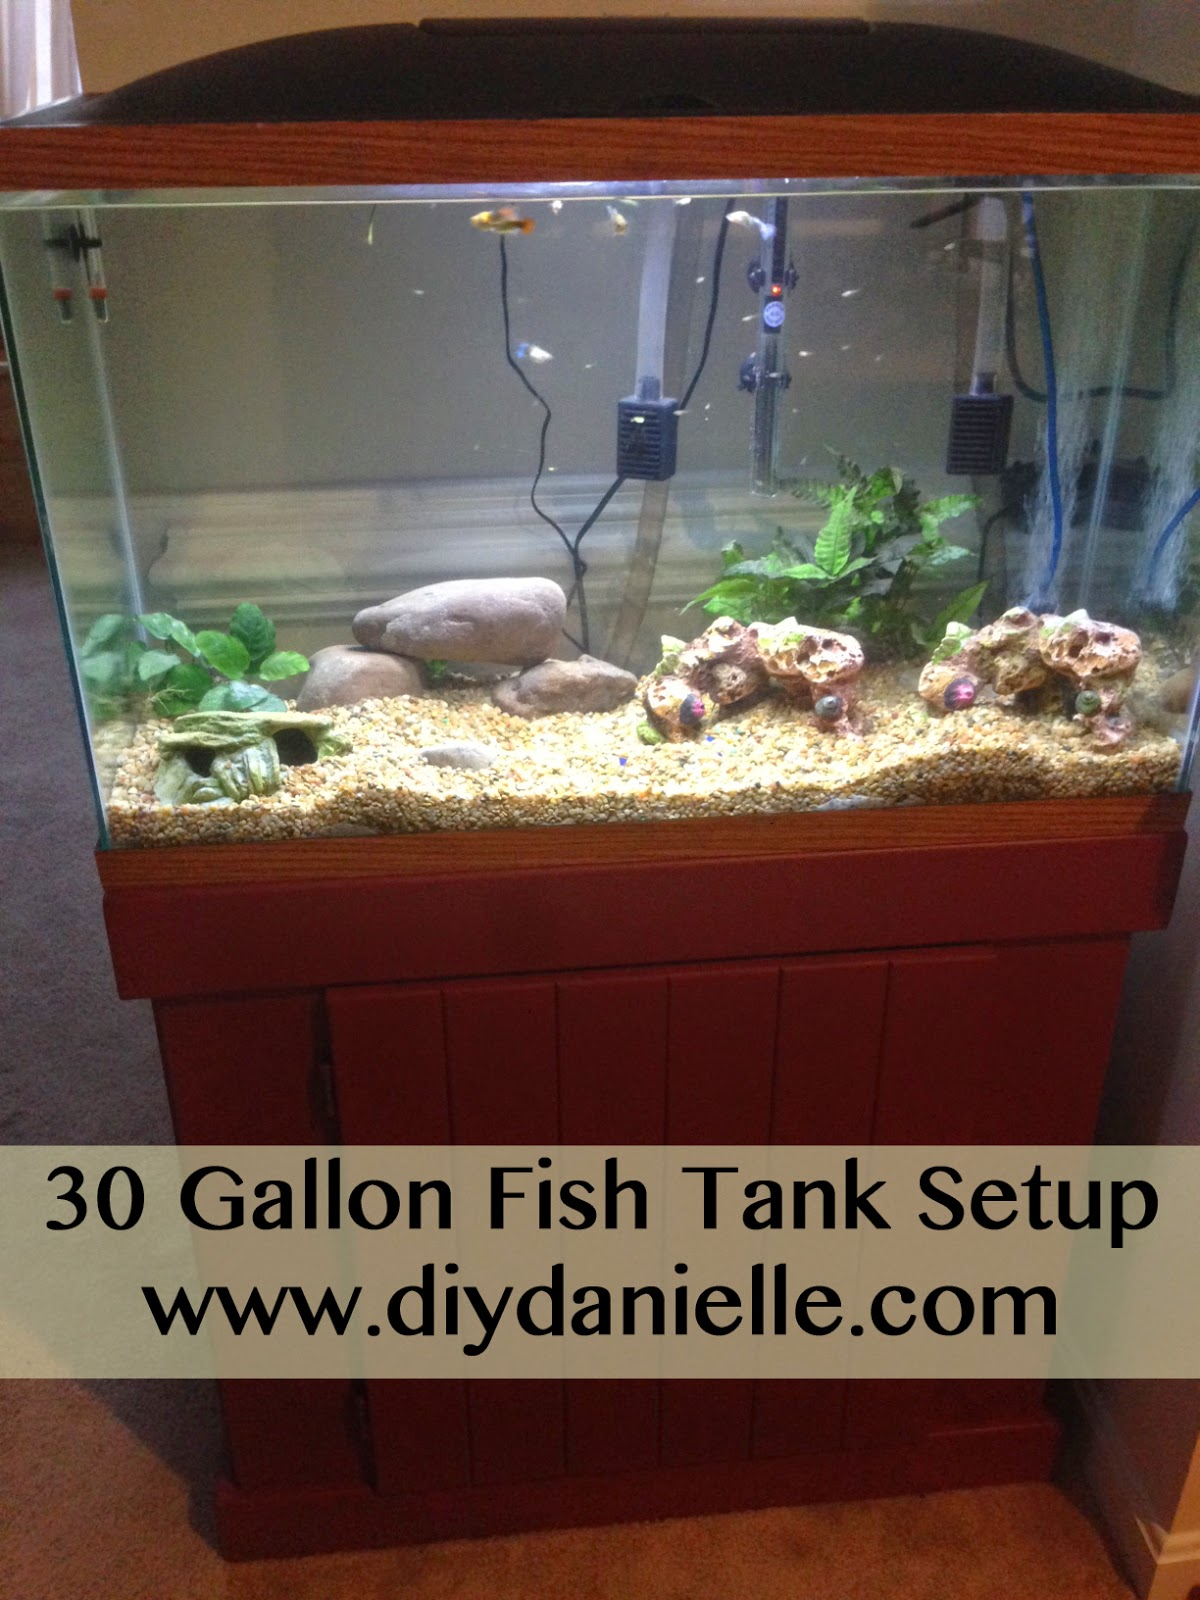 30 gallon fish tank setup diy danielle for 50 gallon fish tank dimensions